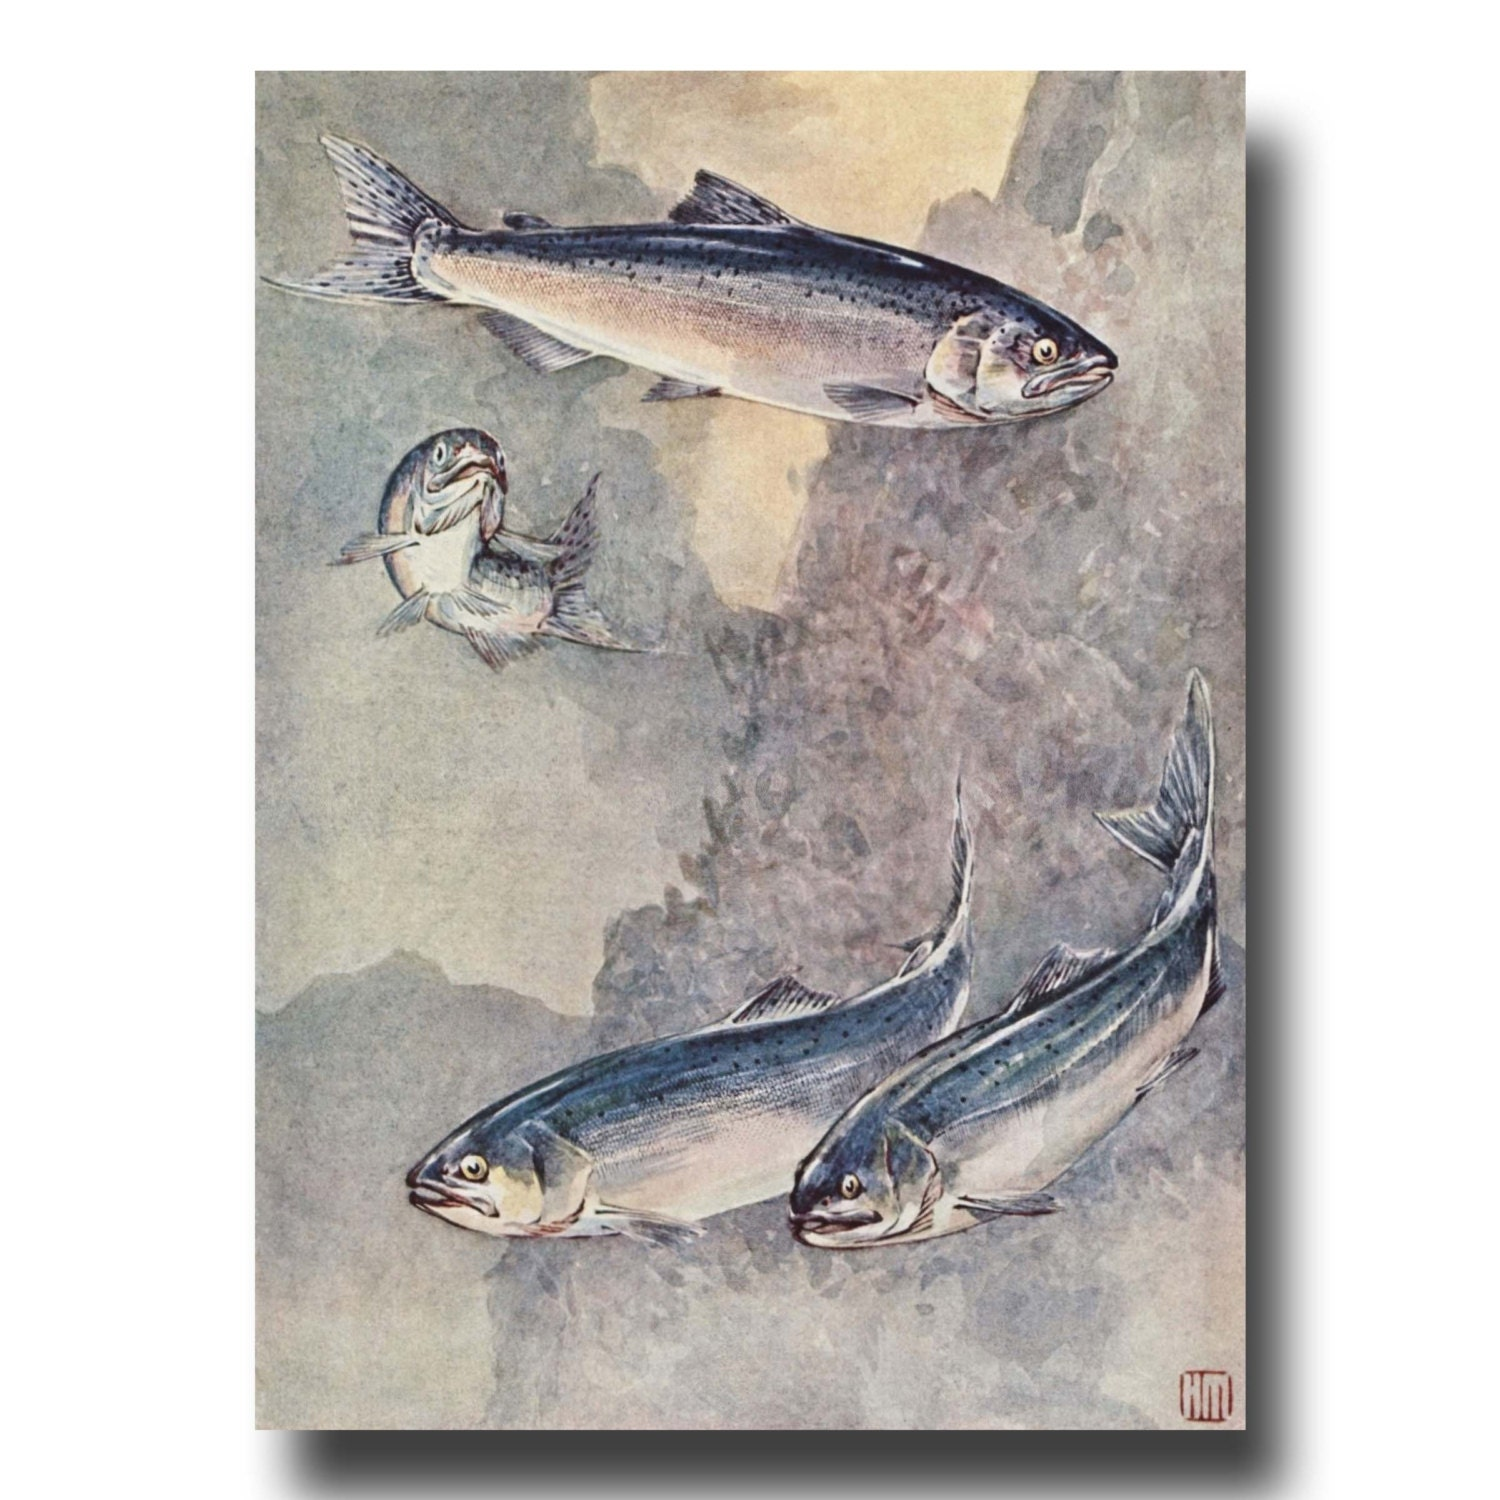 Fly fishing gifts 1930s salmon fish art vintage rustic for Fly fishing gifts